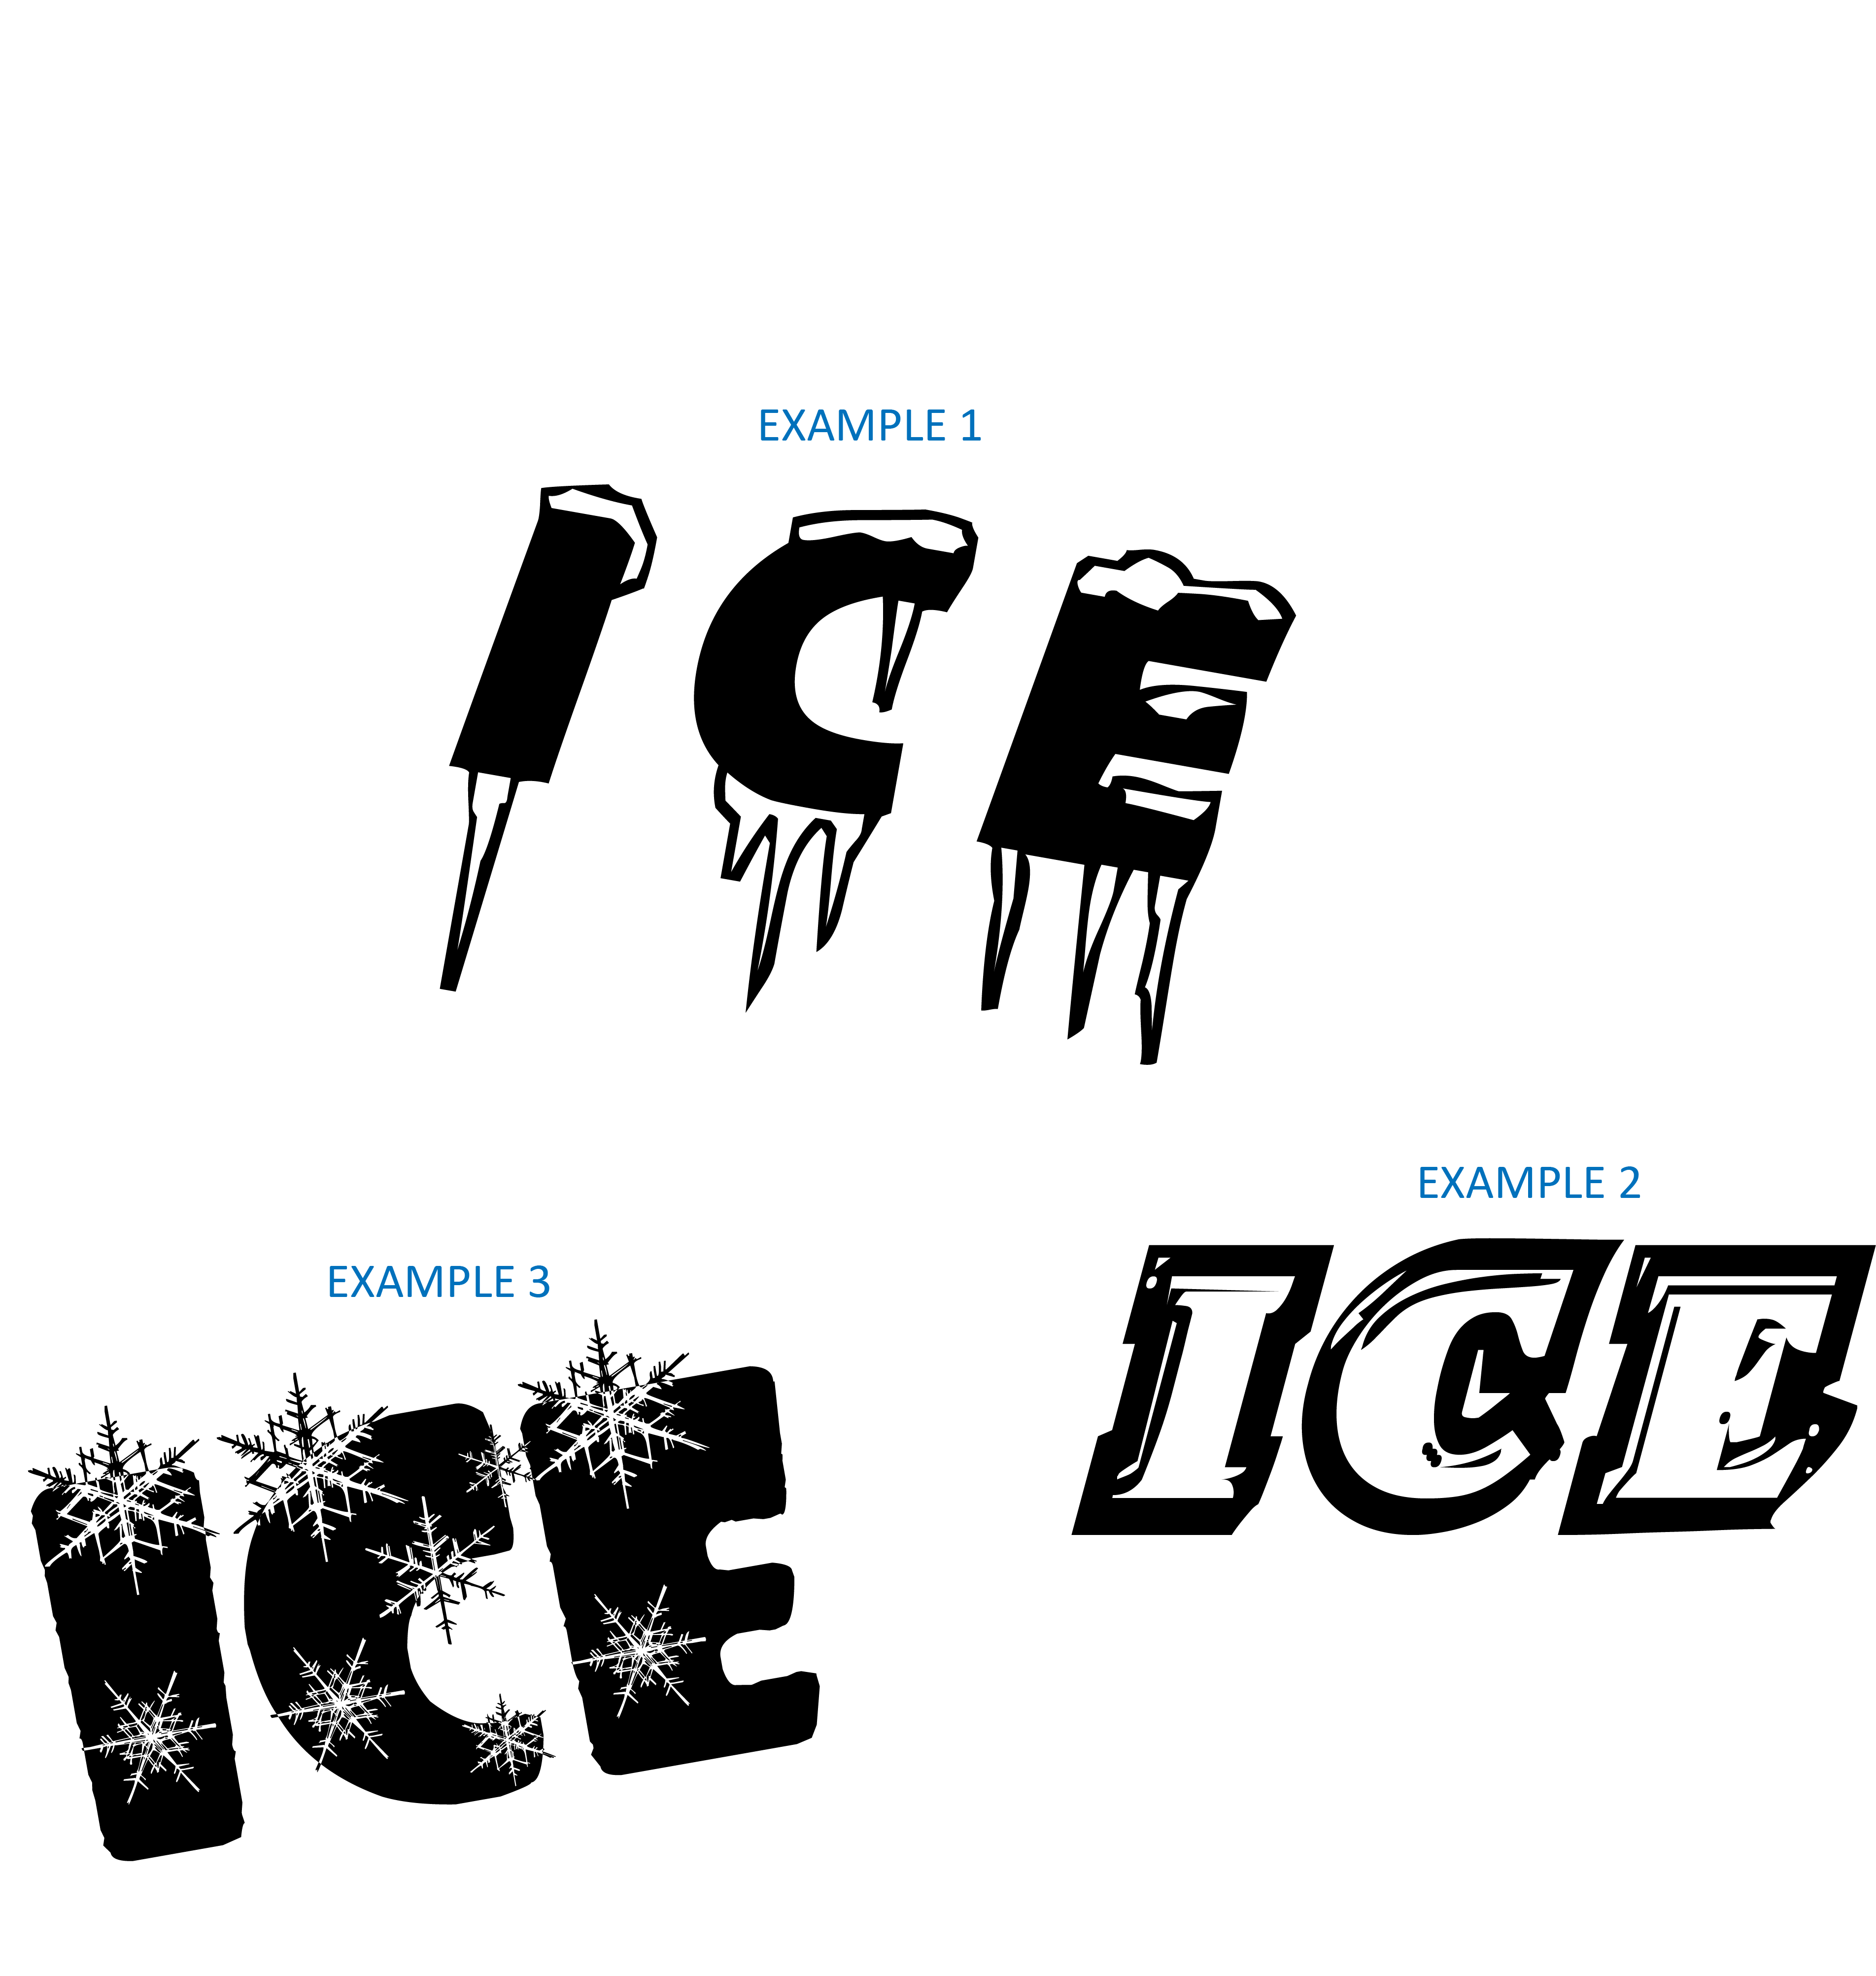 17 the word on it with ice or snow cold fonts images